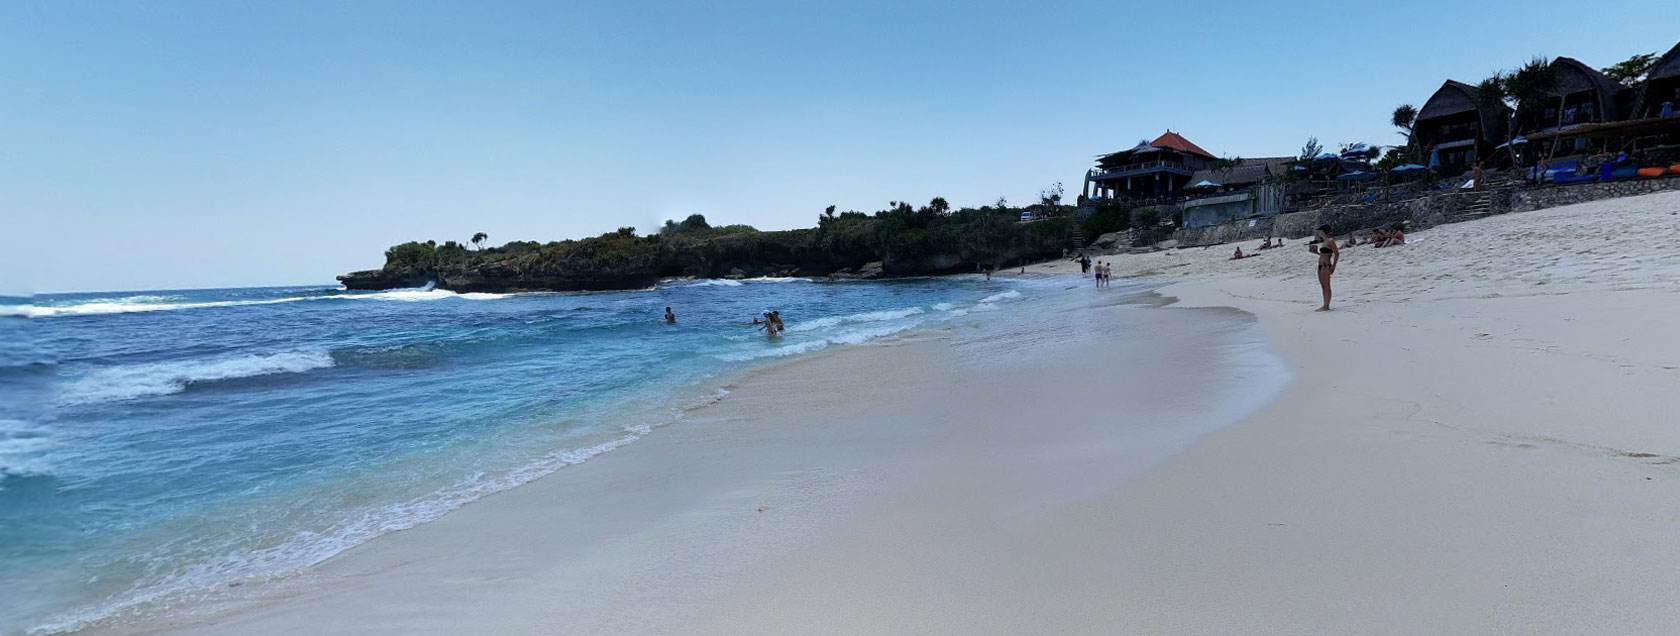 Dream Beach - Lembongan Beach